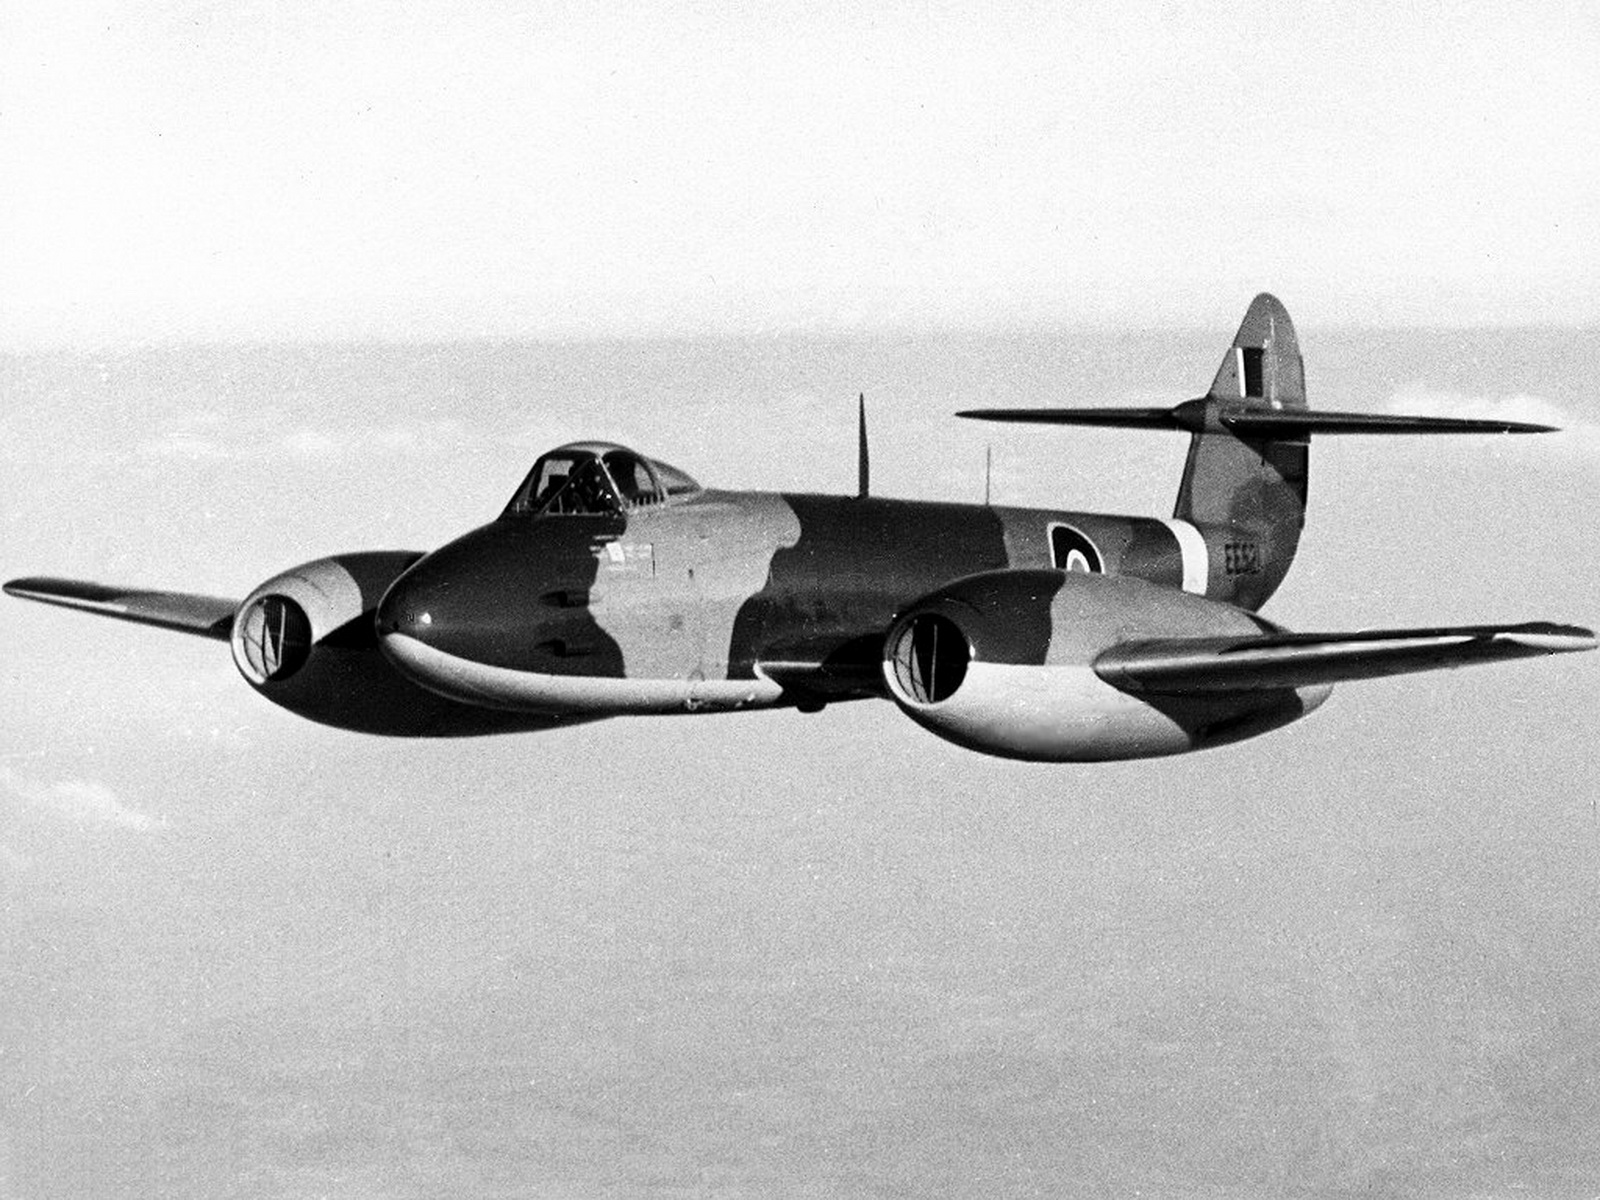 world war ii pictures in details gloster meteor f 3 of royal air force 616 squadron in flight. Black Bedroom Furniture Sets. Home Design Ideas